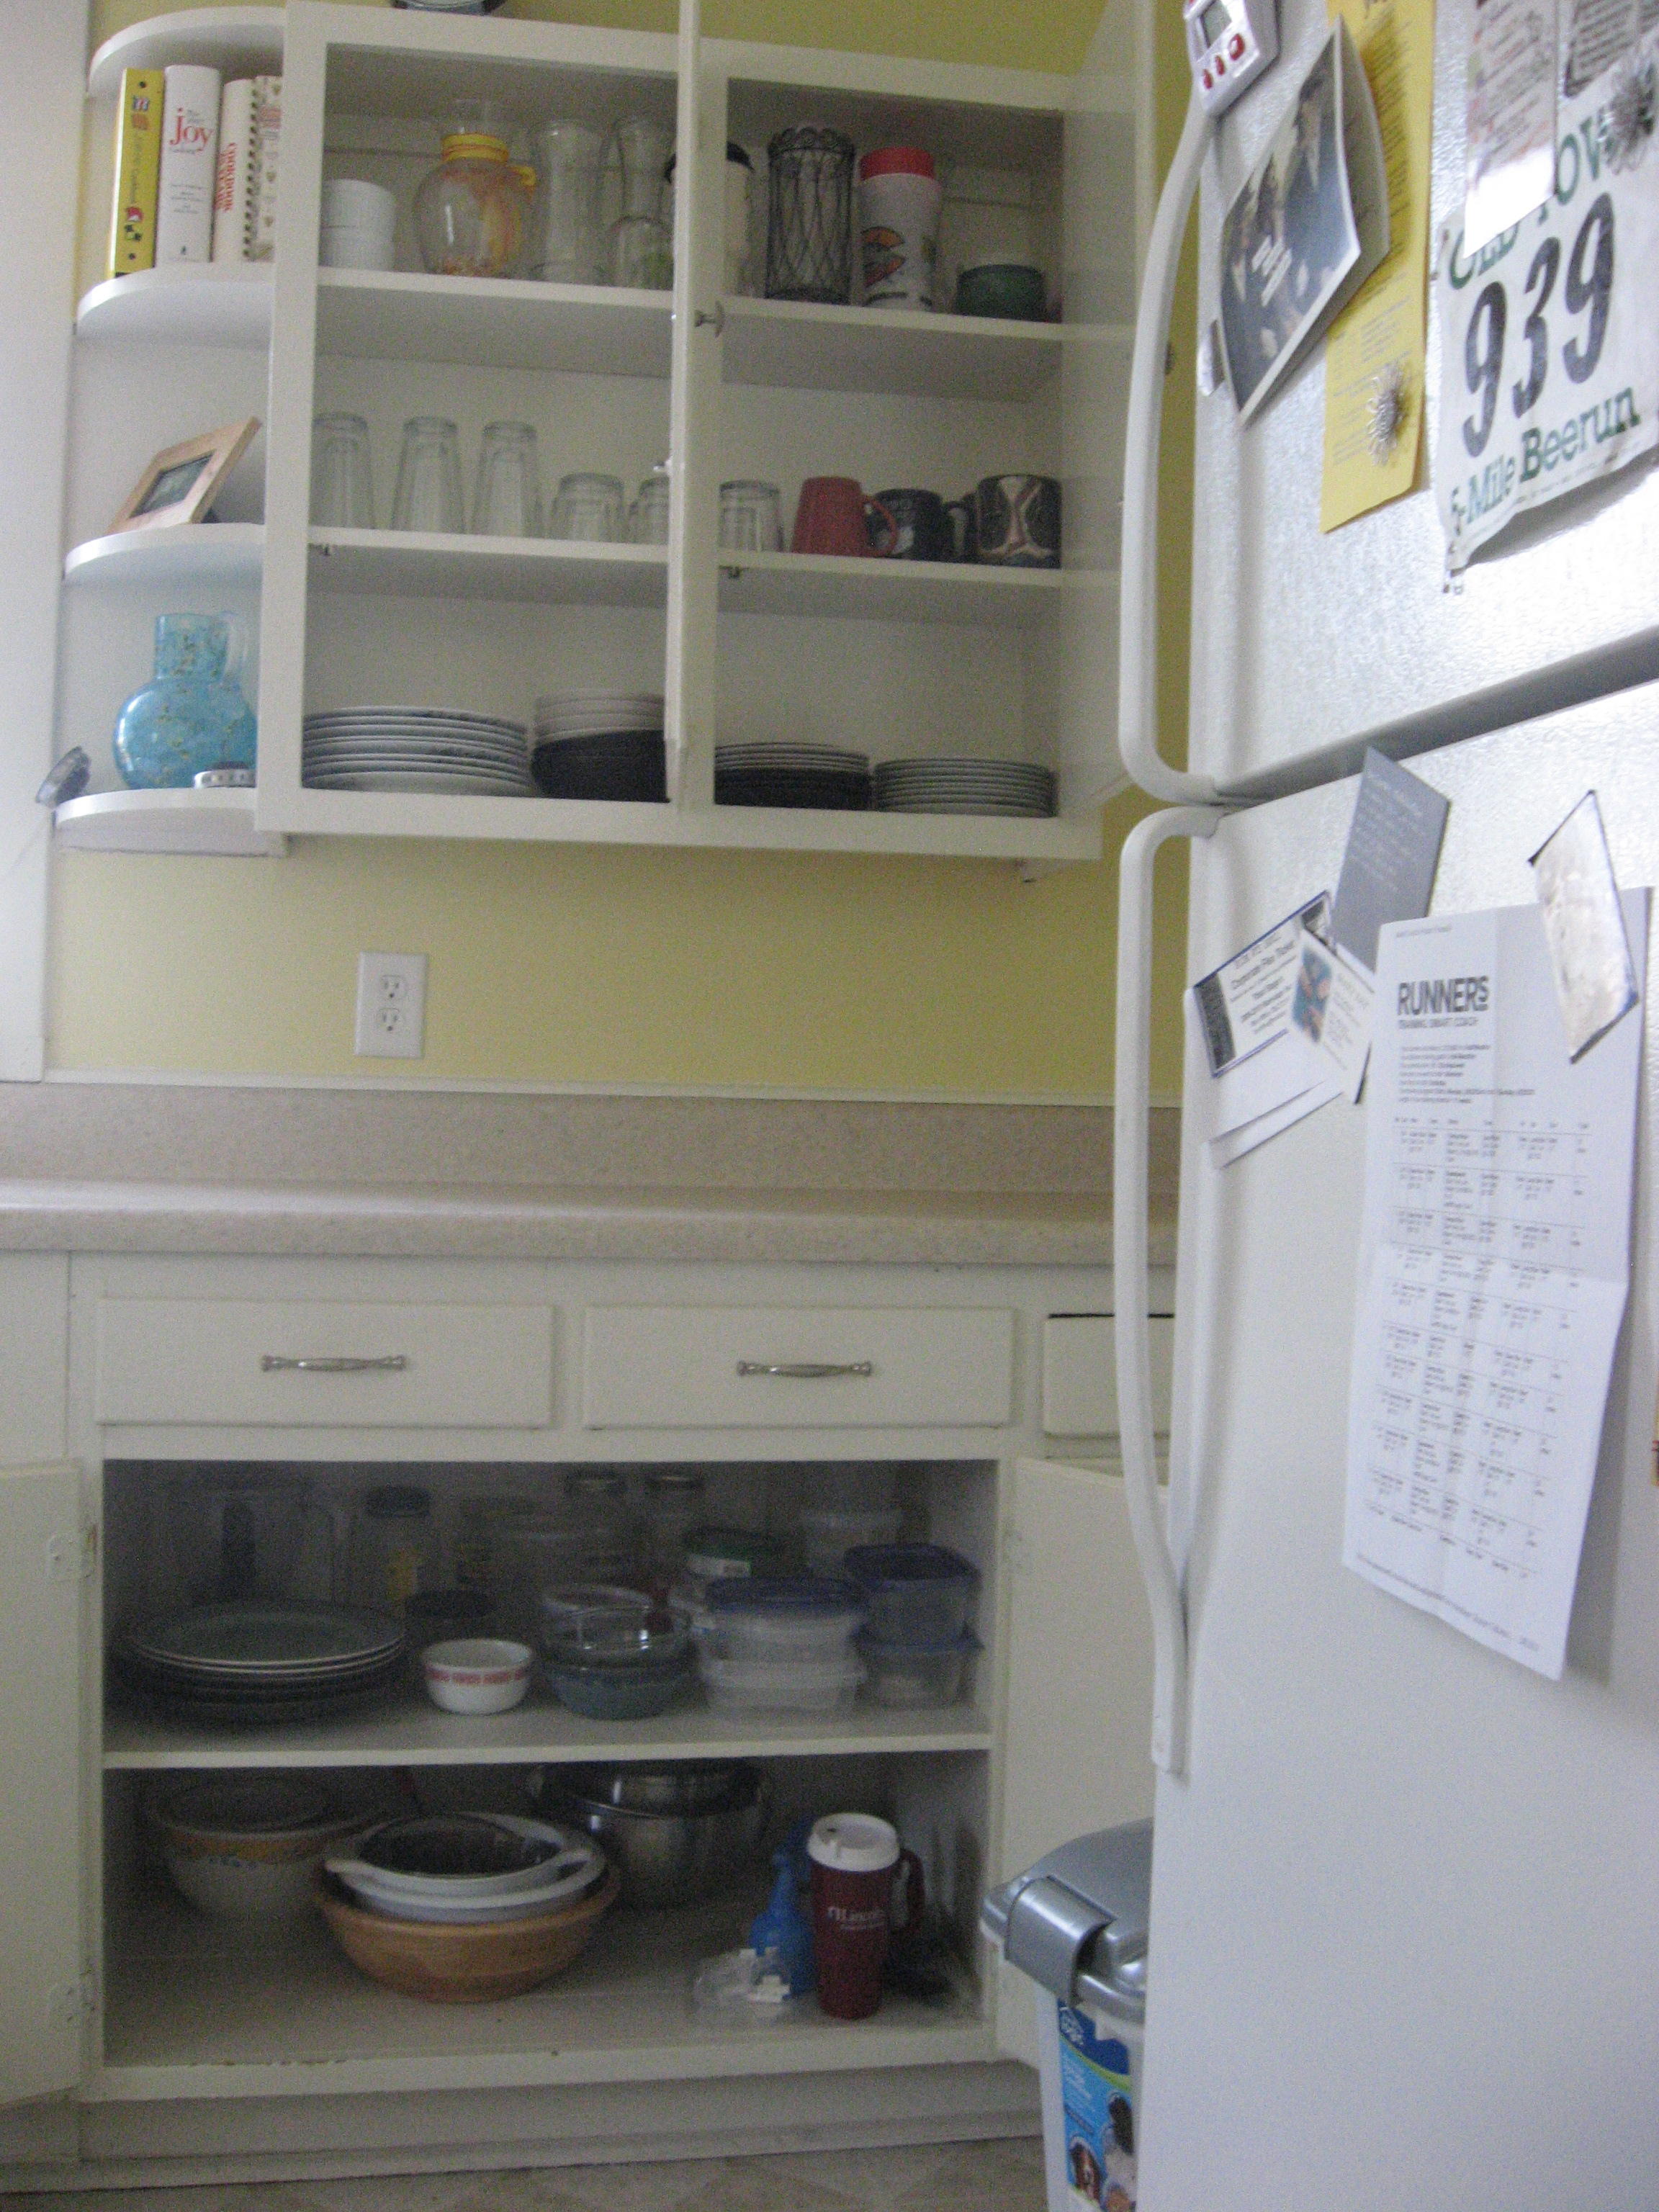 The long view of my perfectly organized cabinets! I love it!